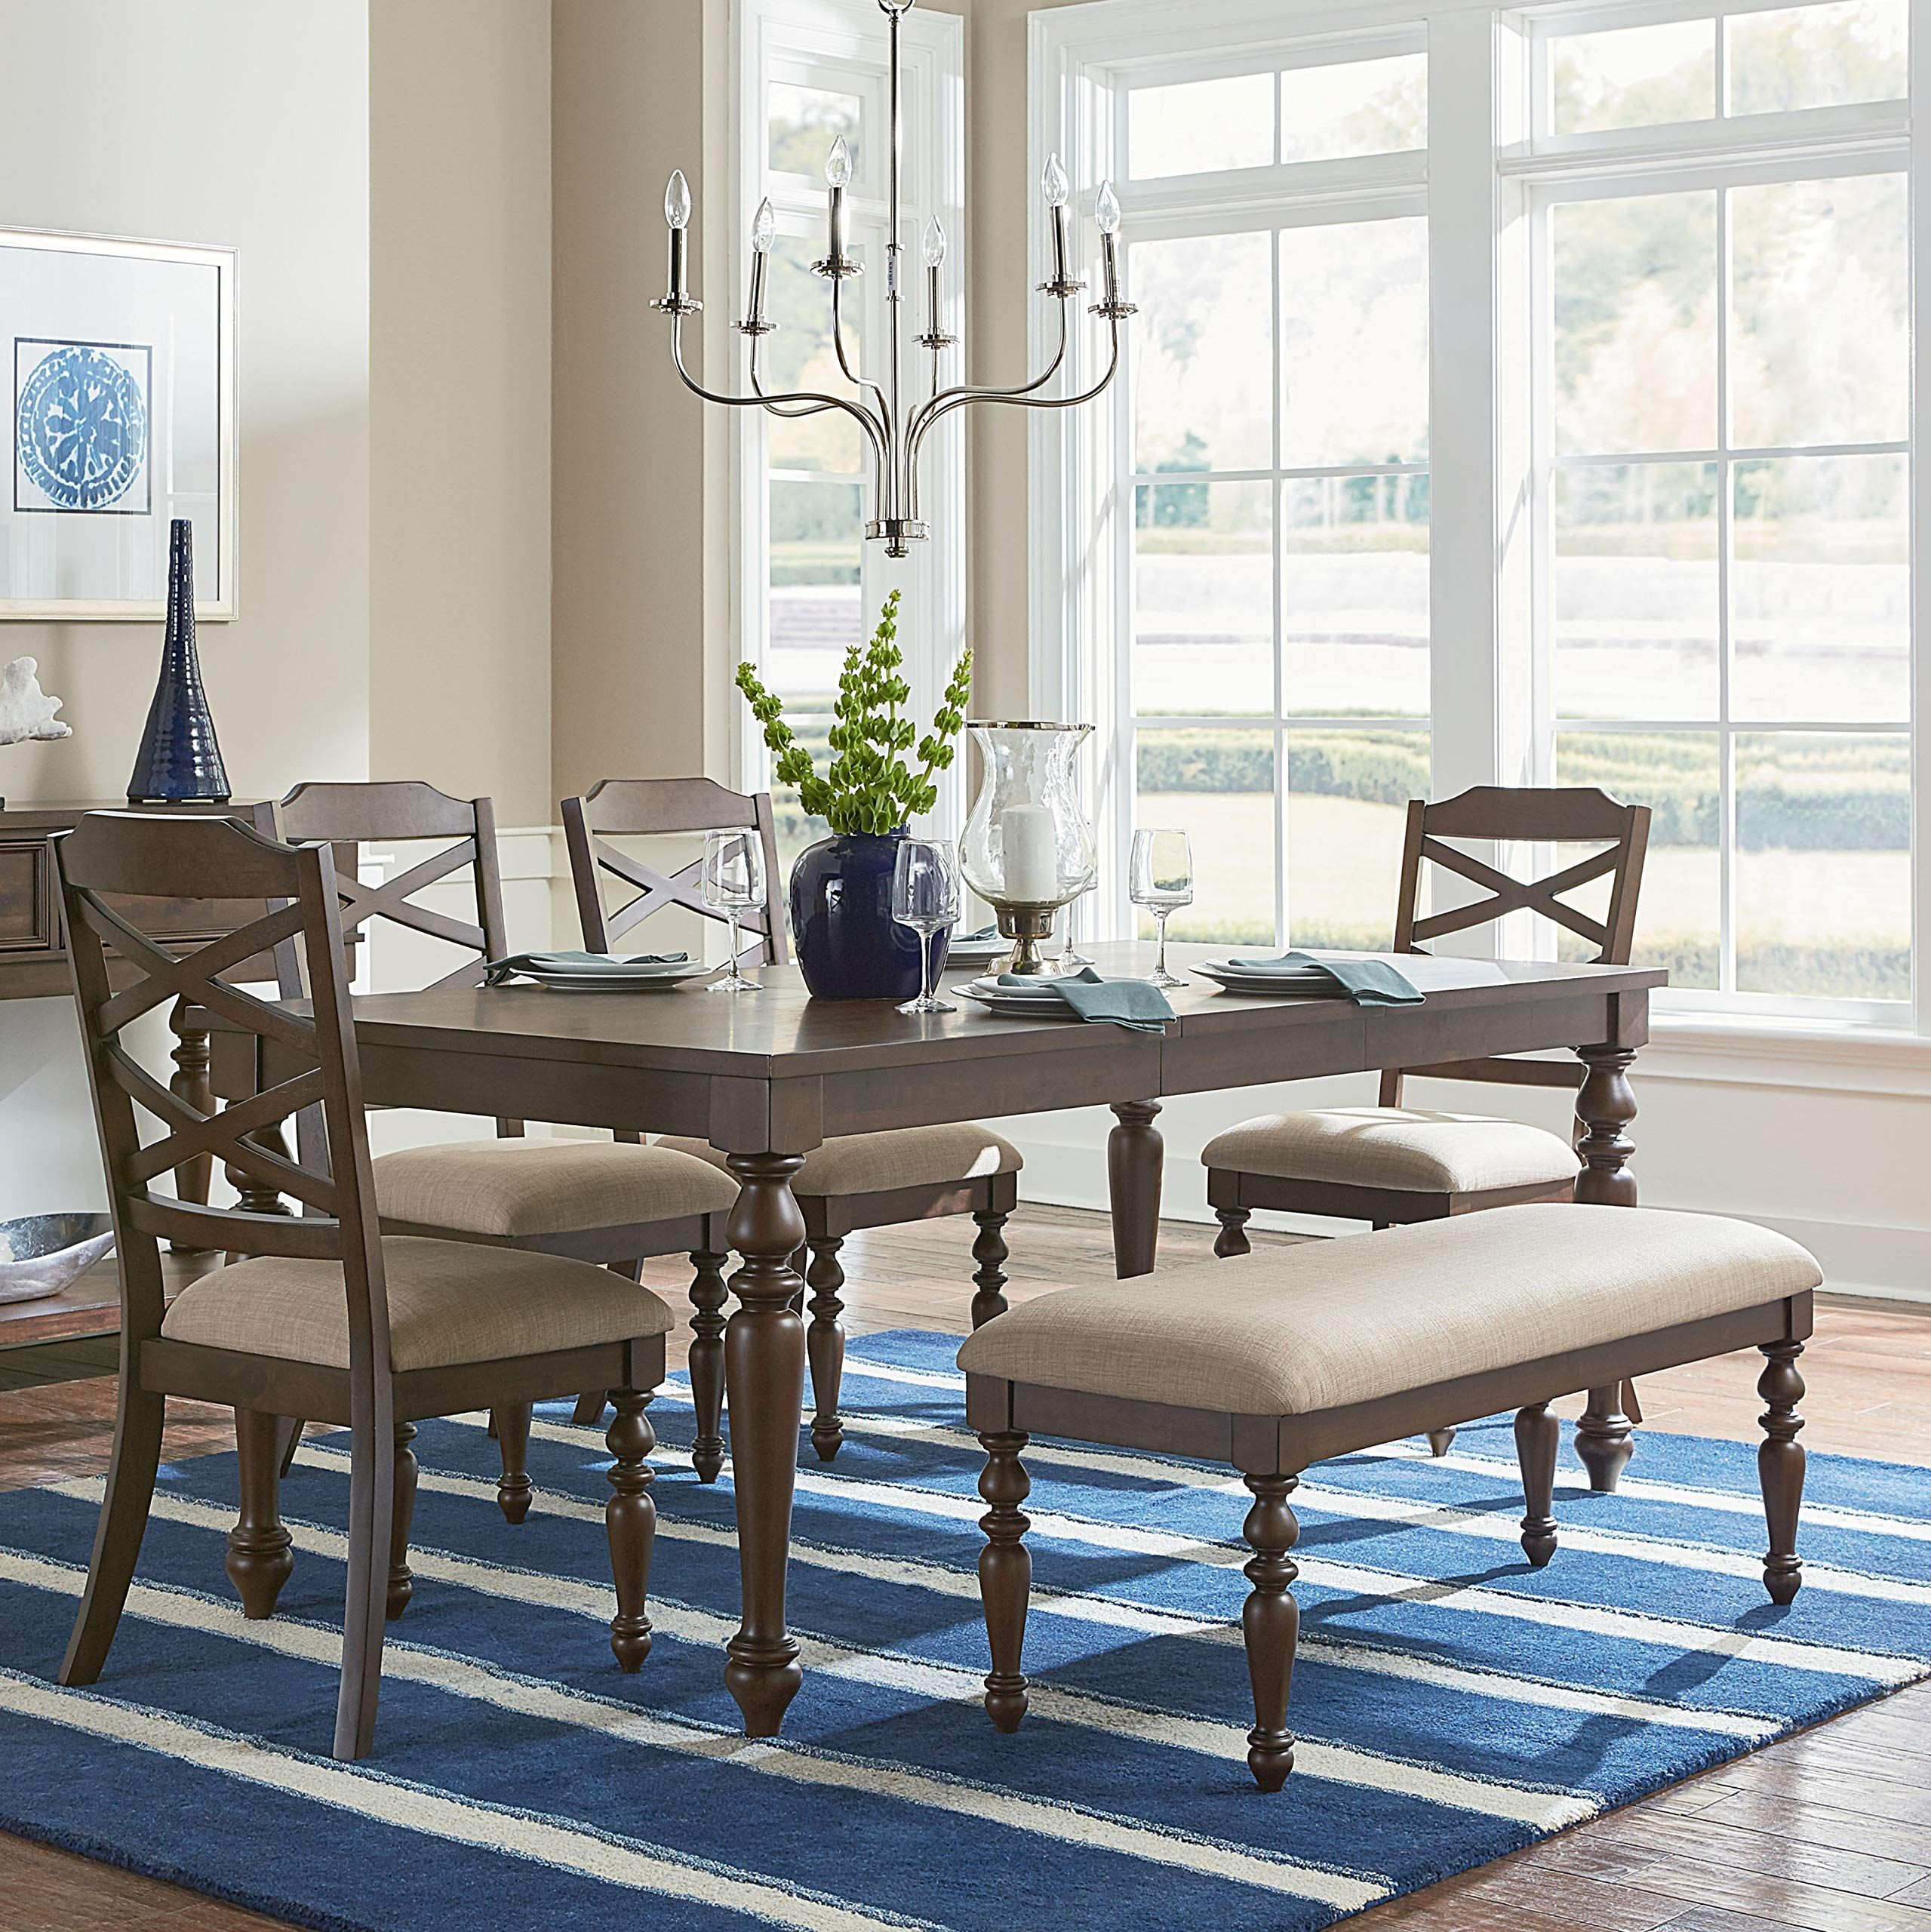 furnituremaxx laren cherry finish wood dining set with leaf table rh pinterest com